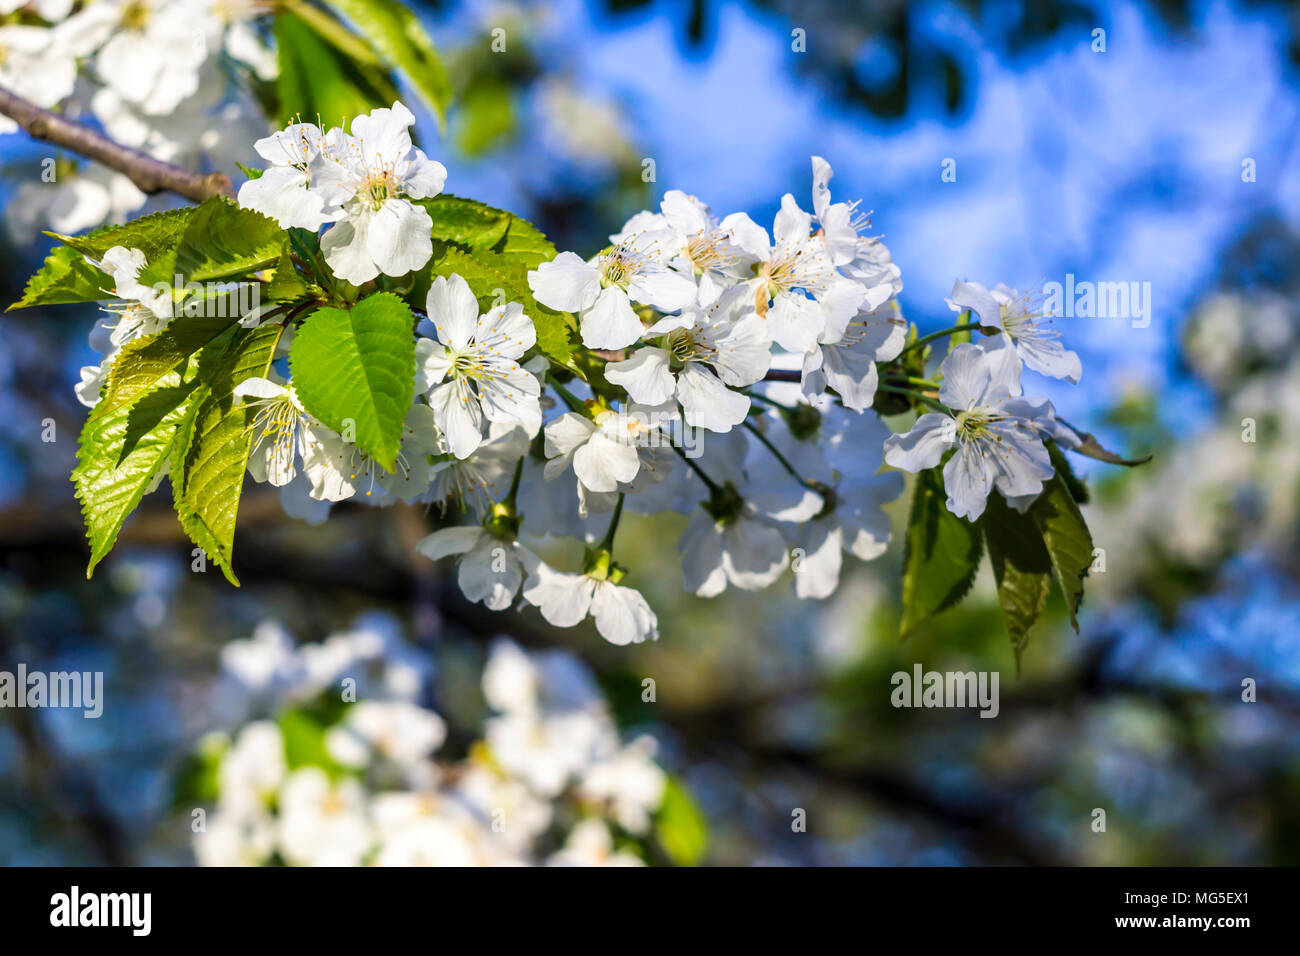 Apple Tree Blossoms Variety Of Delicate White Flowers April